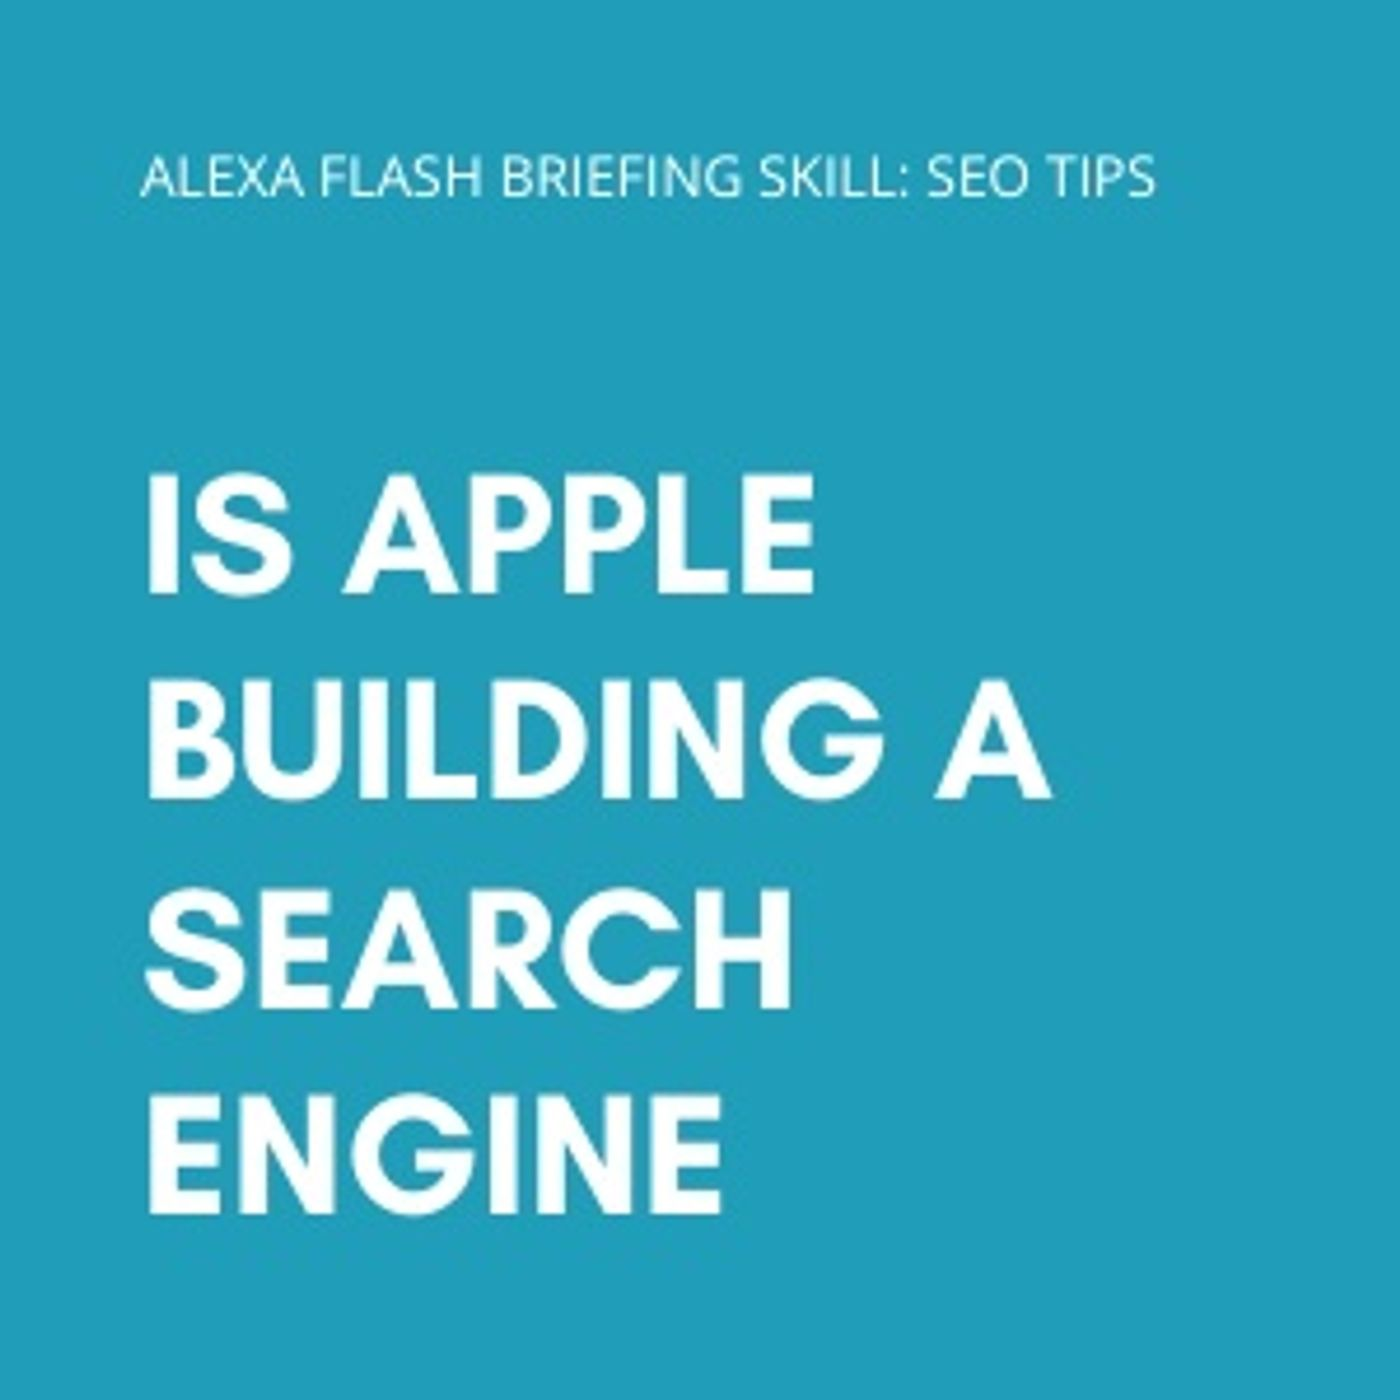 Is Apple building a search engine?